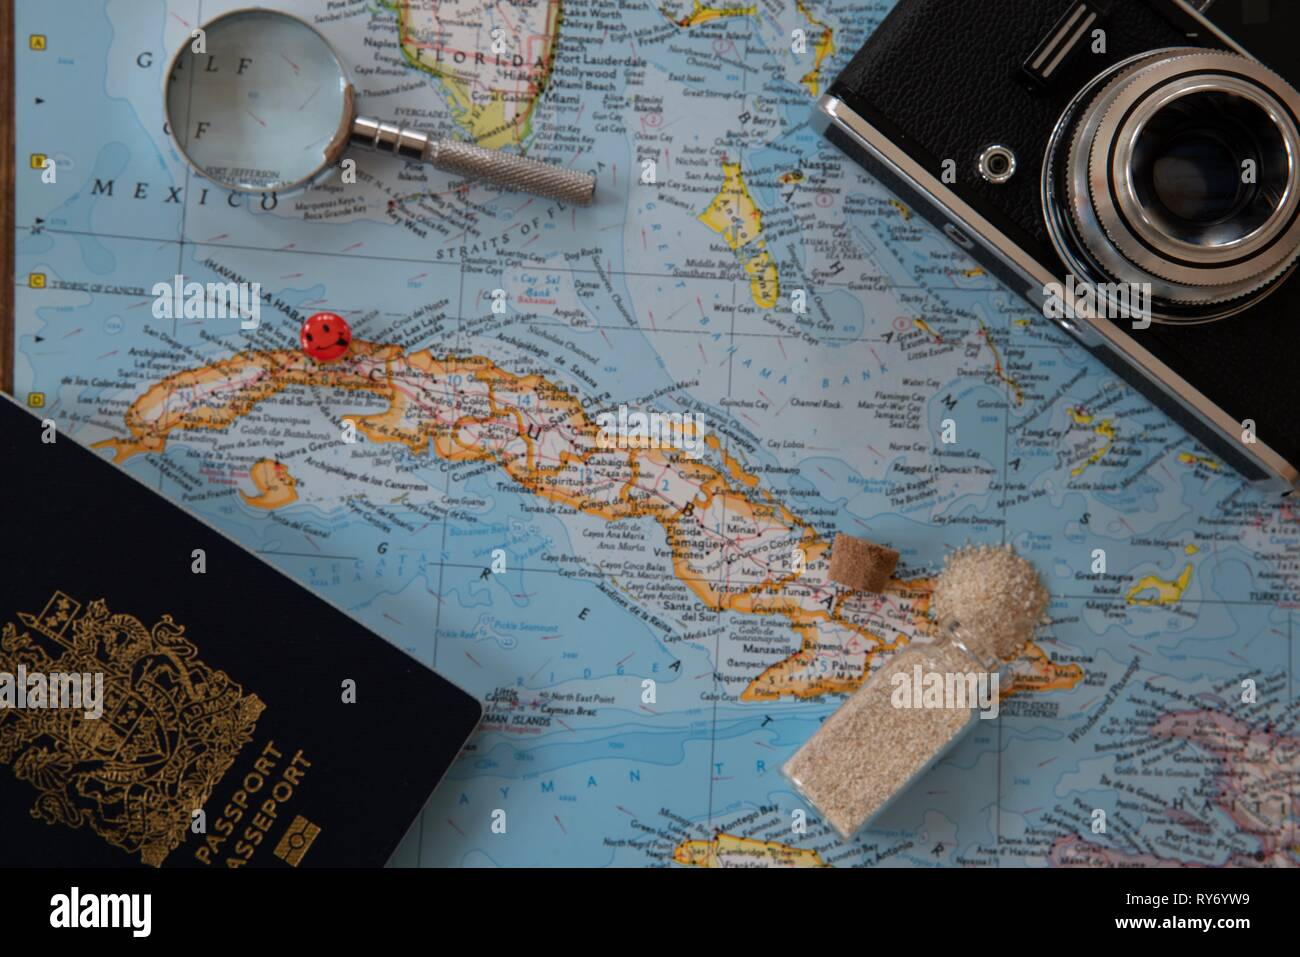 Planning a trip to Cuba on a world map Stock Photo ...